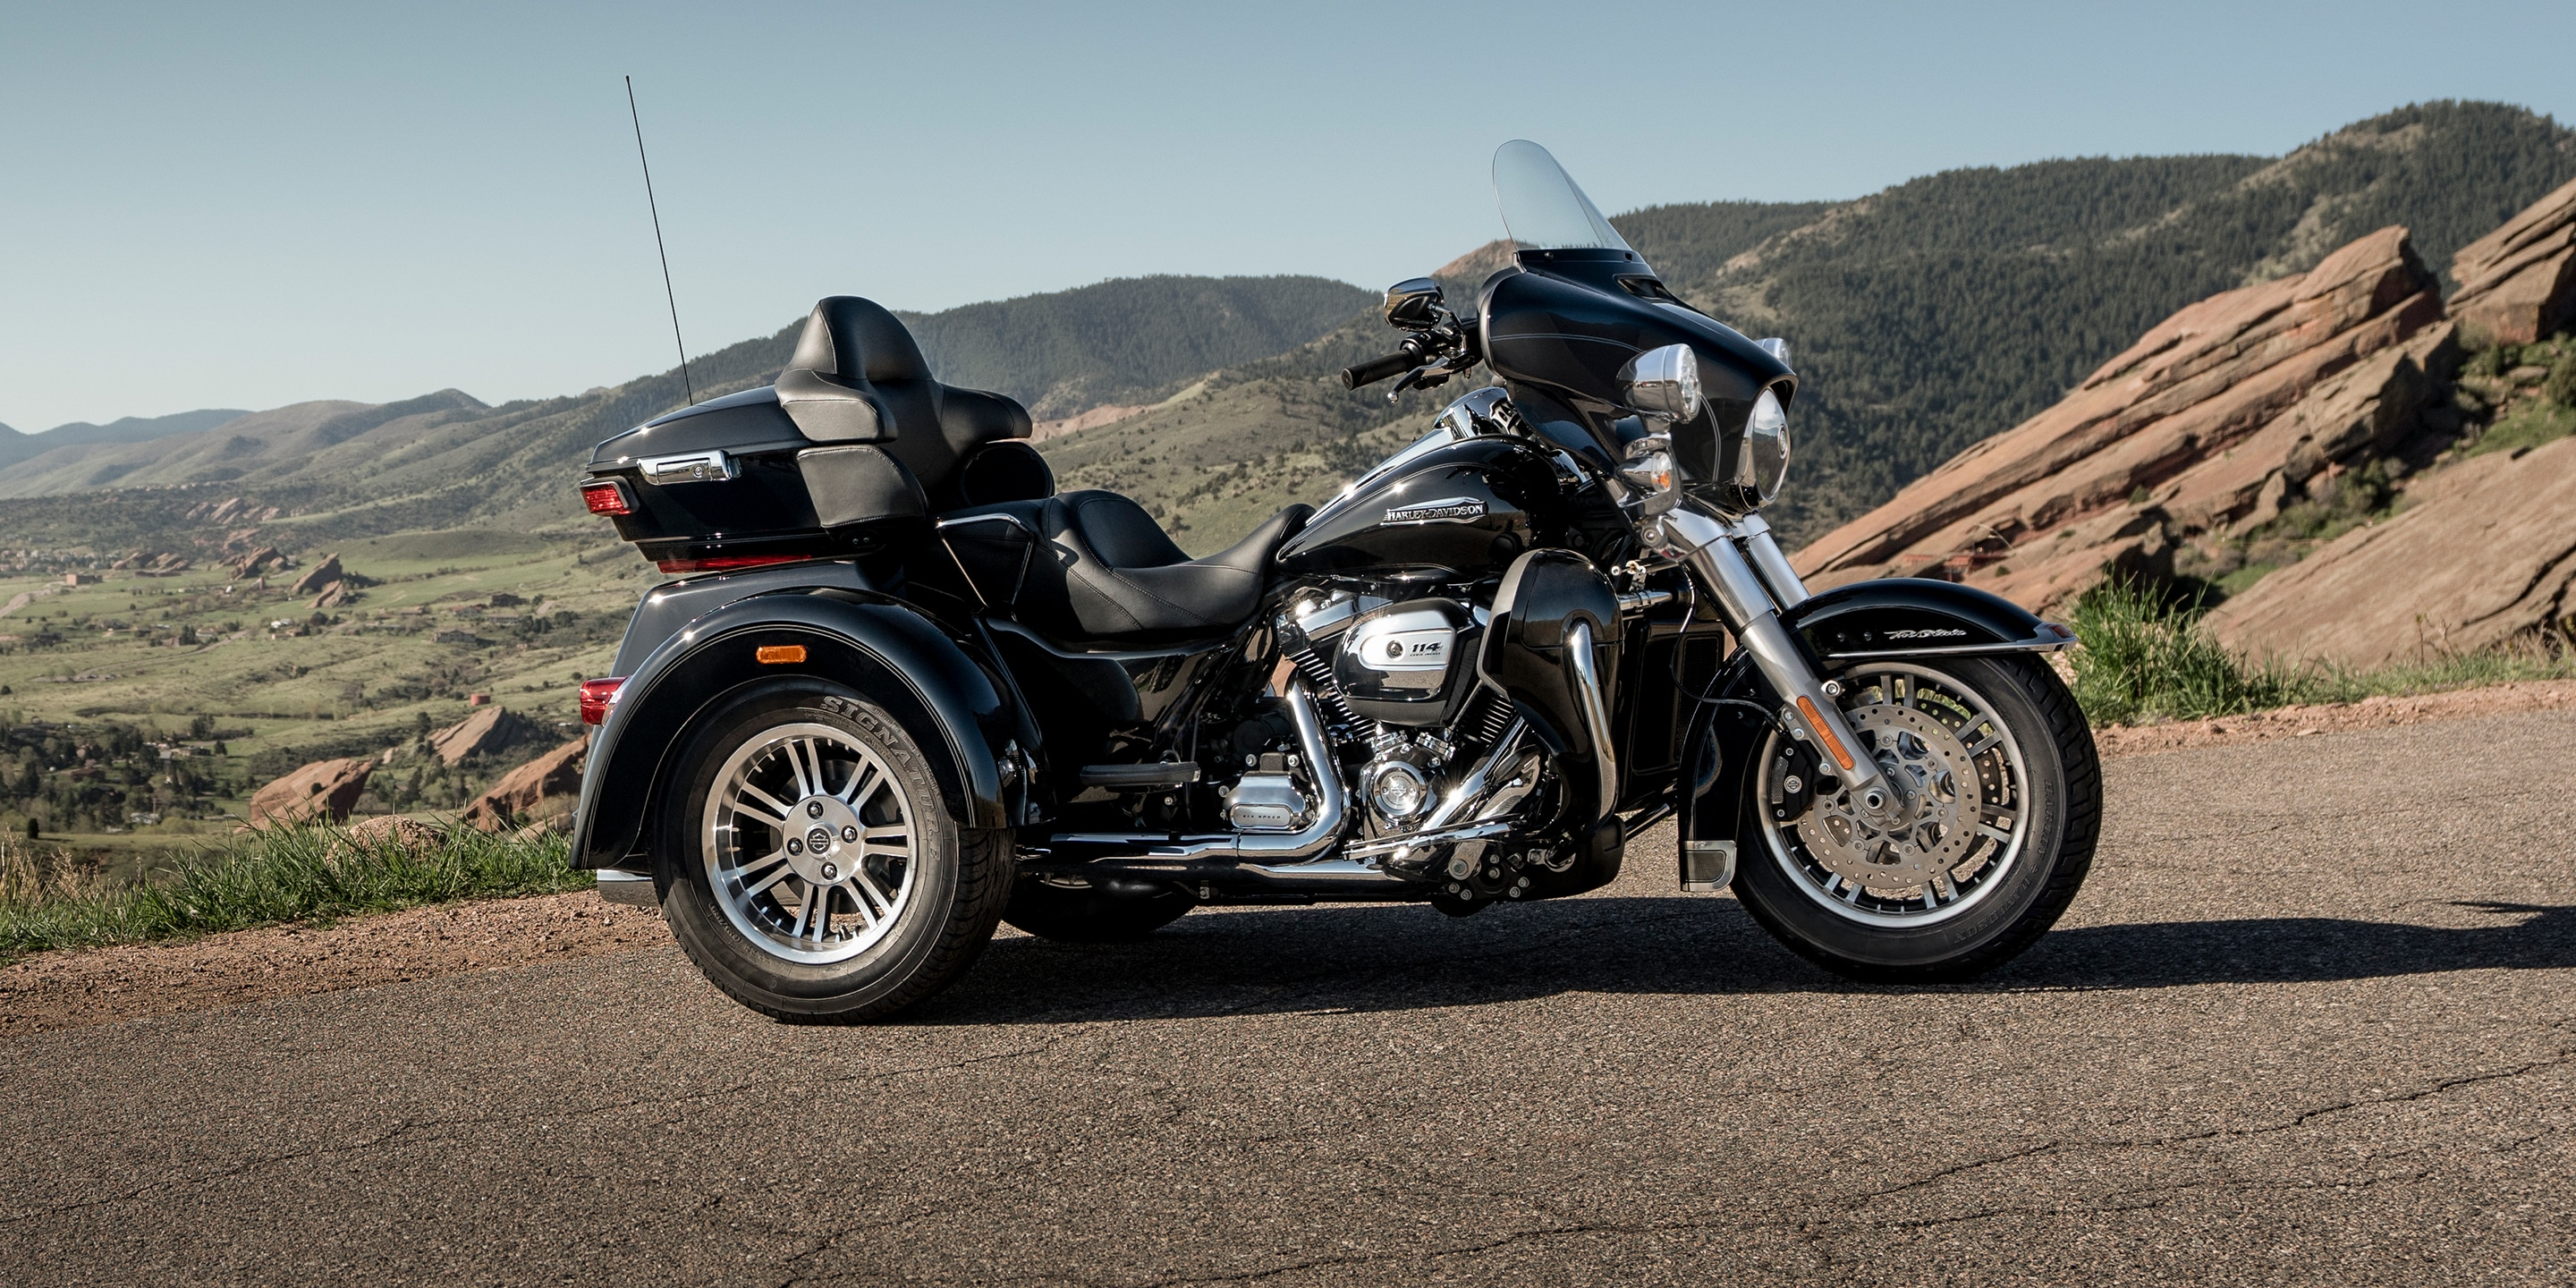 2019 Tri Glide Ultra motorcycle parked by mountain scenery